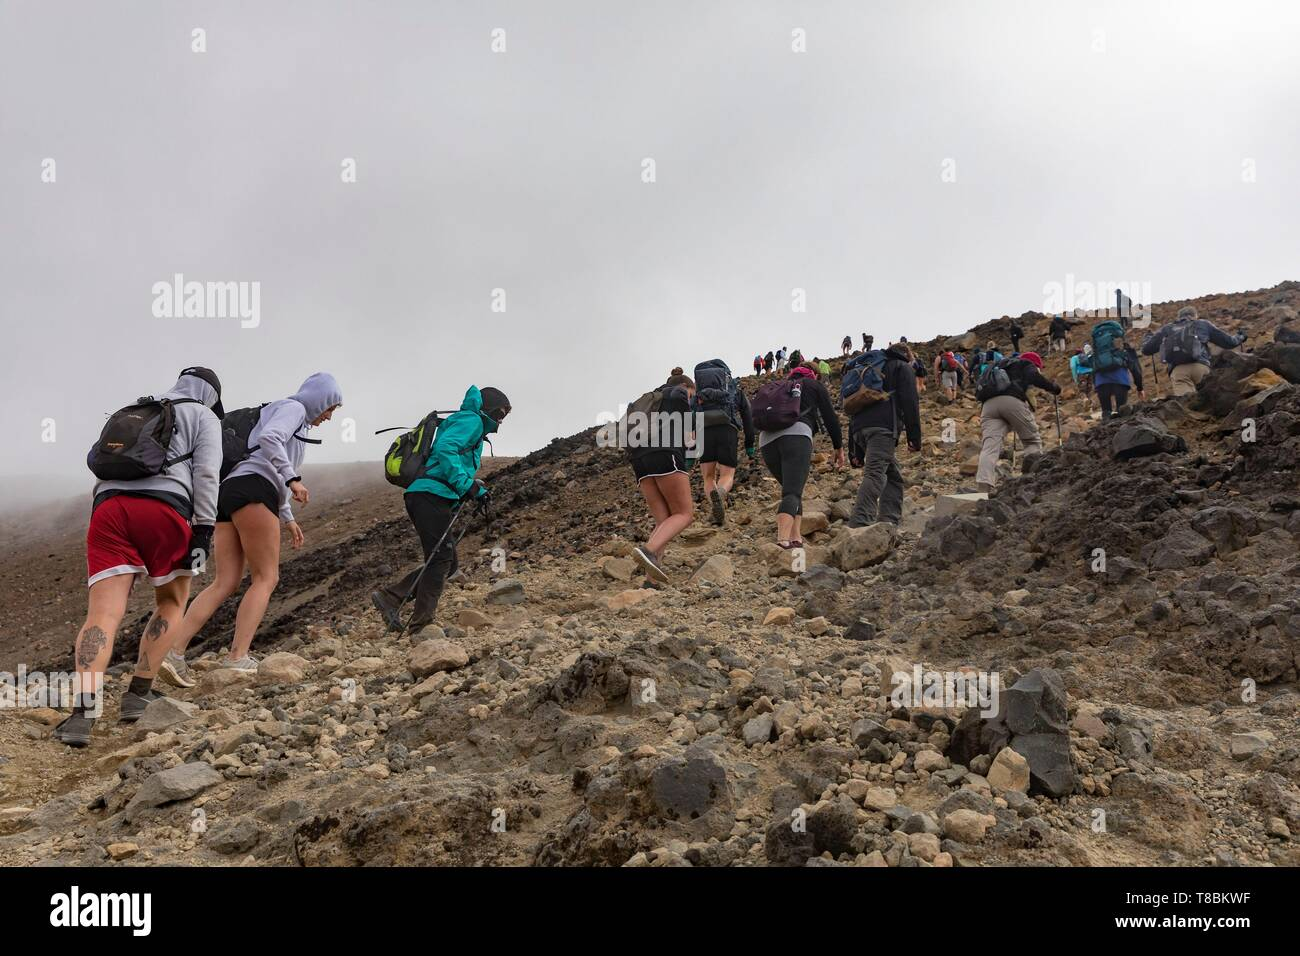 New Zealand, North Island, Waikato region, Tongariro National Park, 1967 m, labelled Unesco World Heritage Site, hikers on the Tongariro Alpine crossing - Stock Image